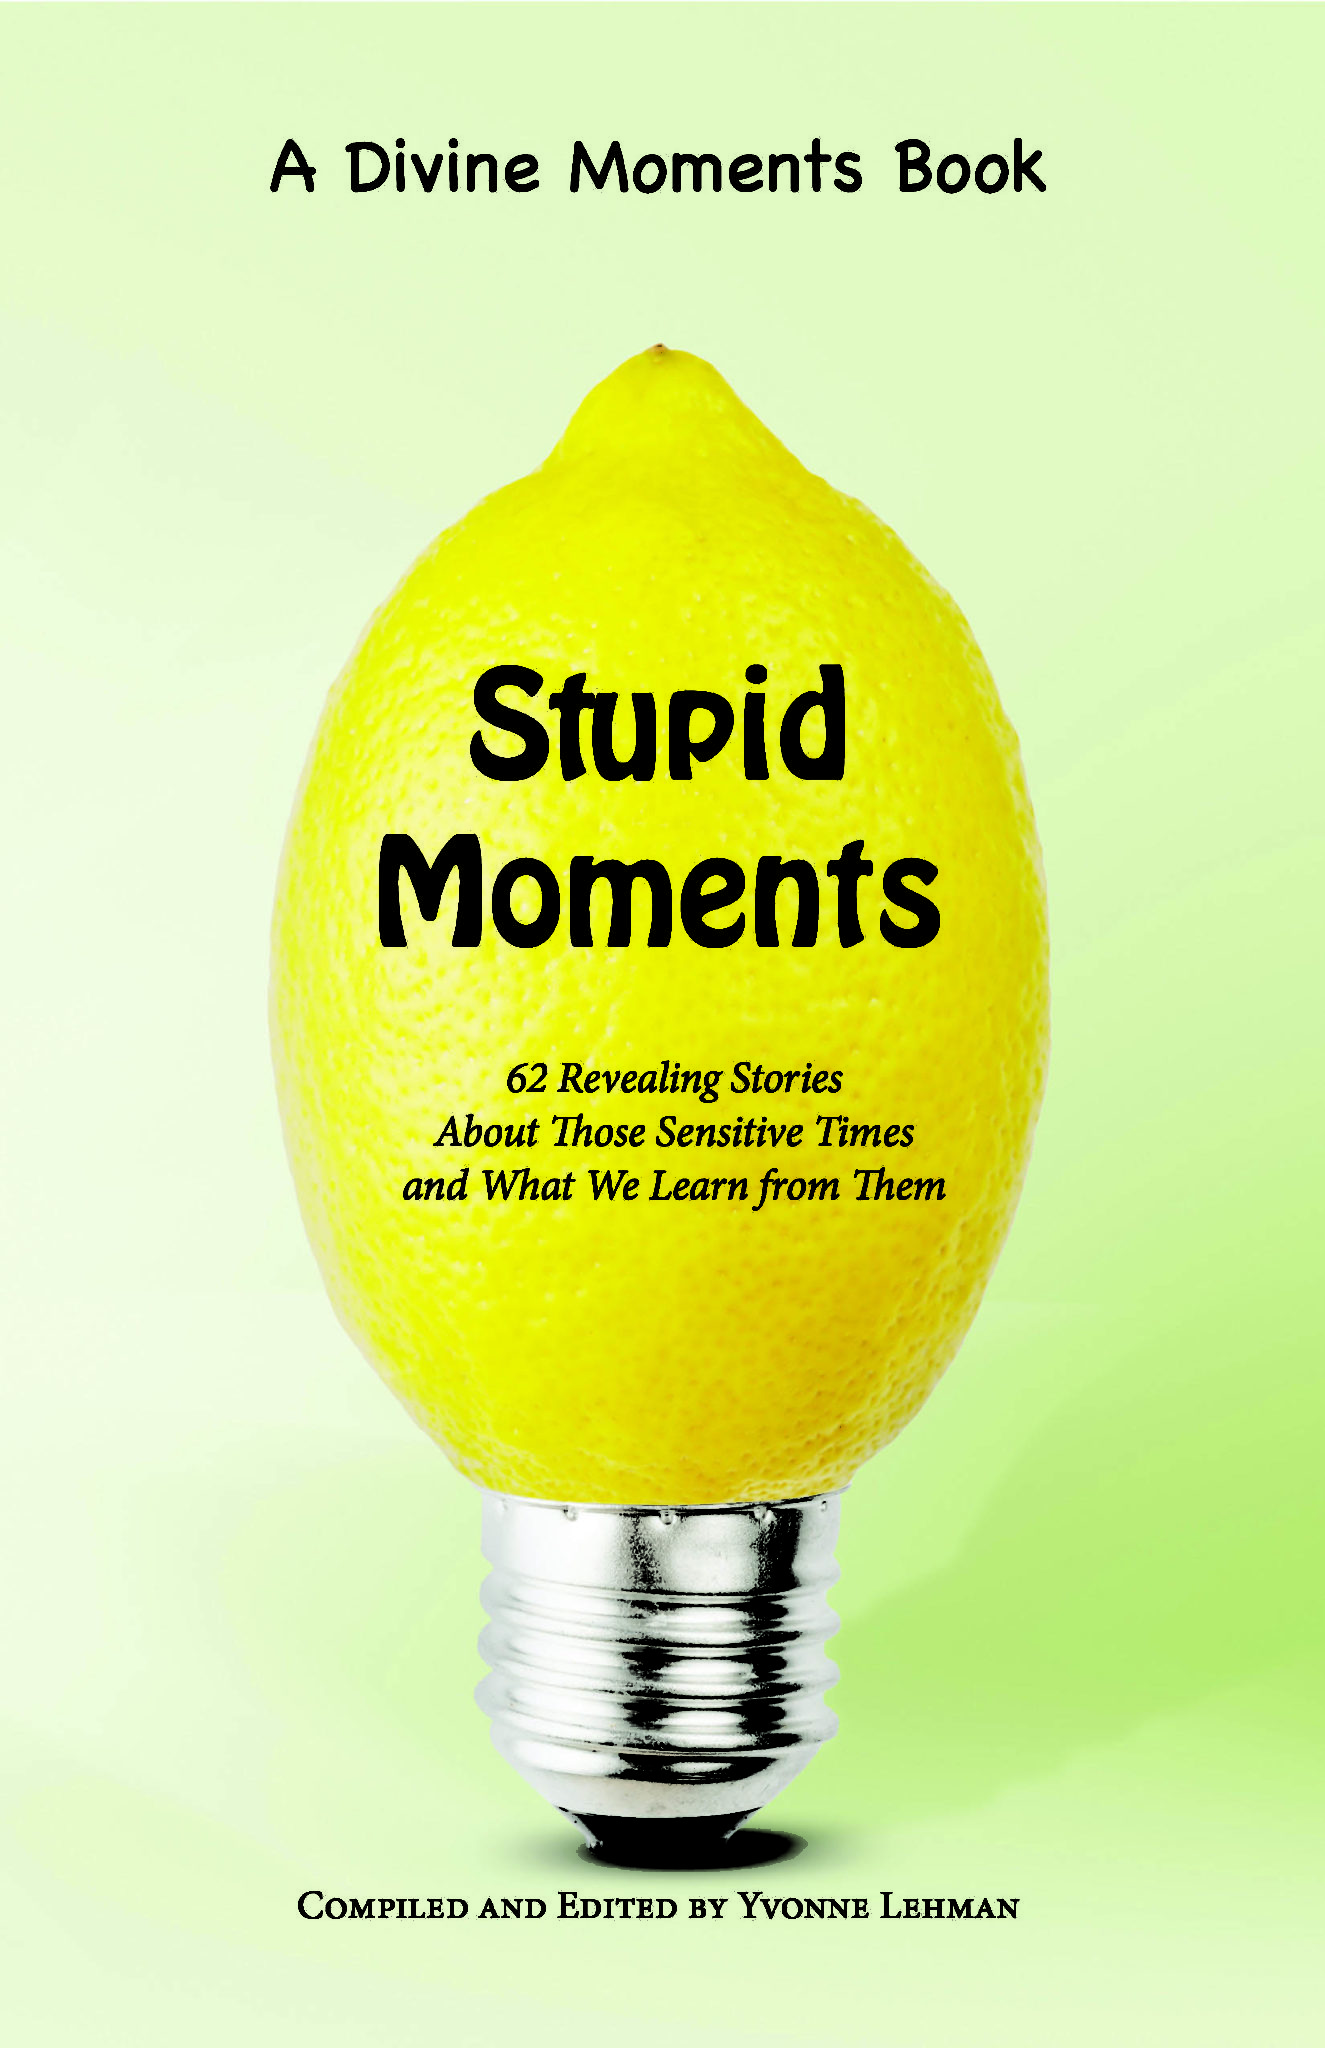 Lessons Learned from Stupid Moments